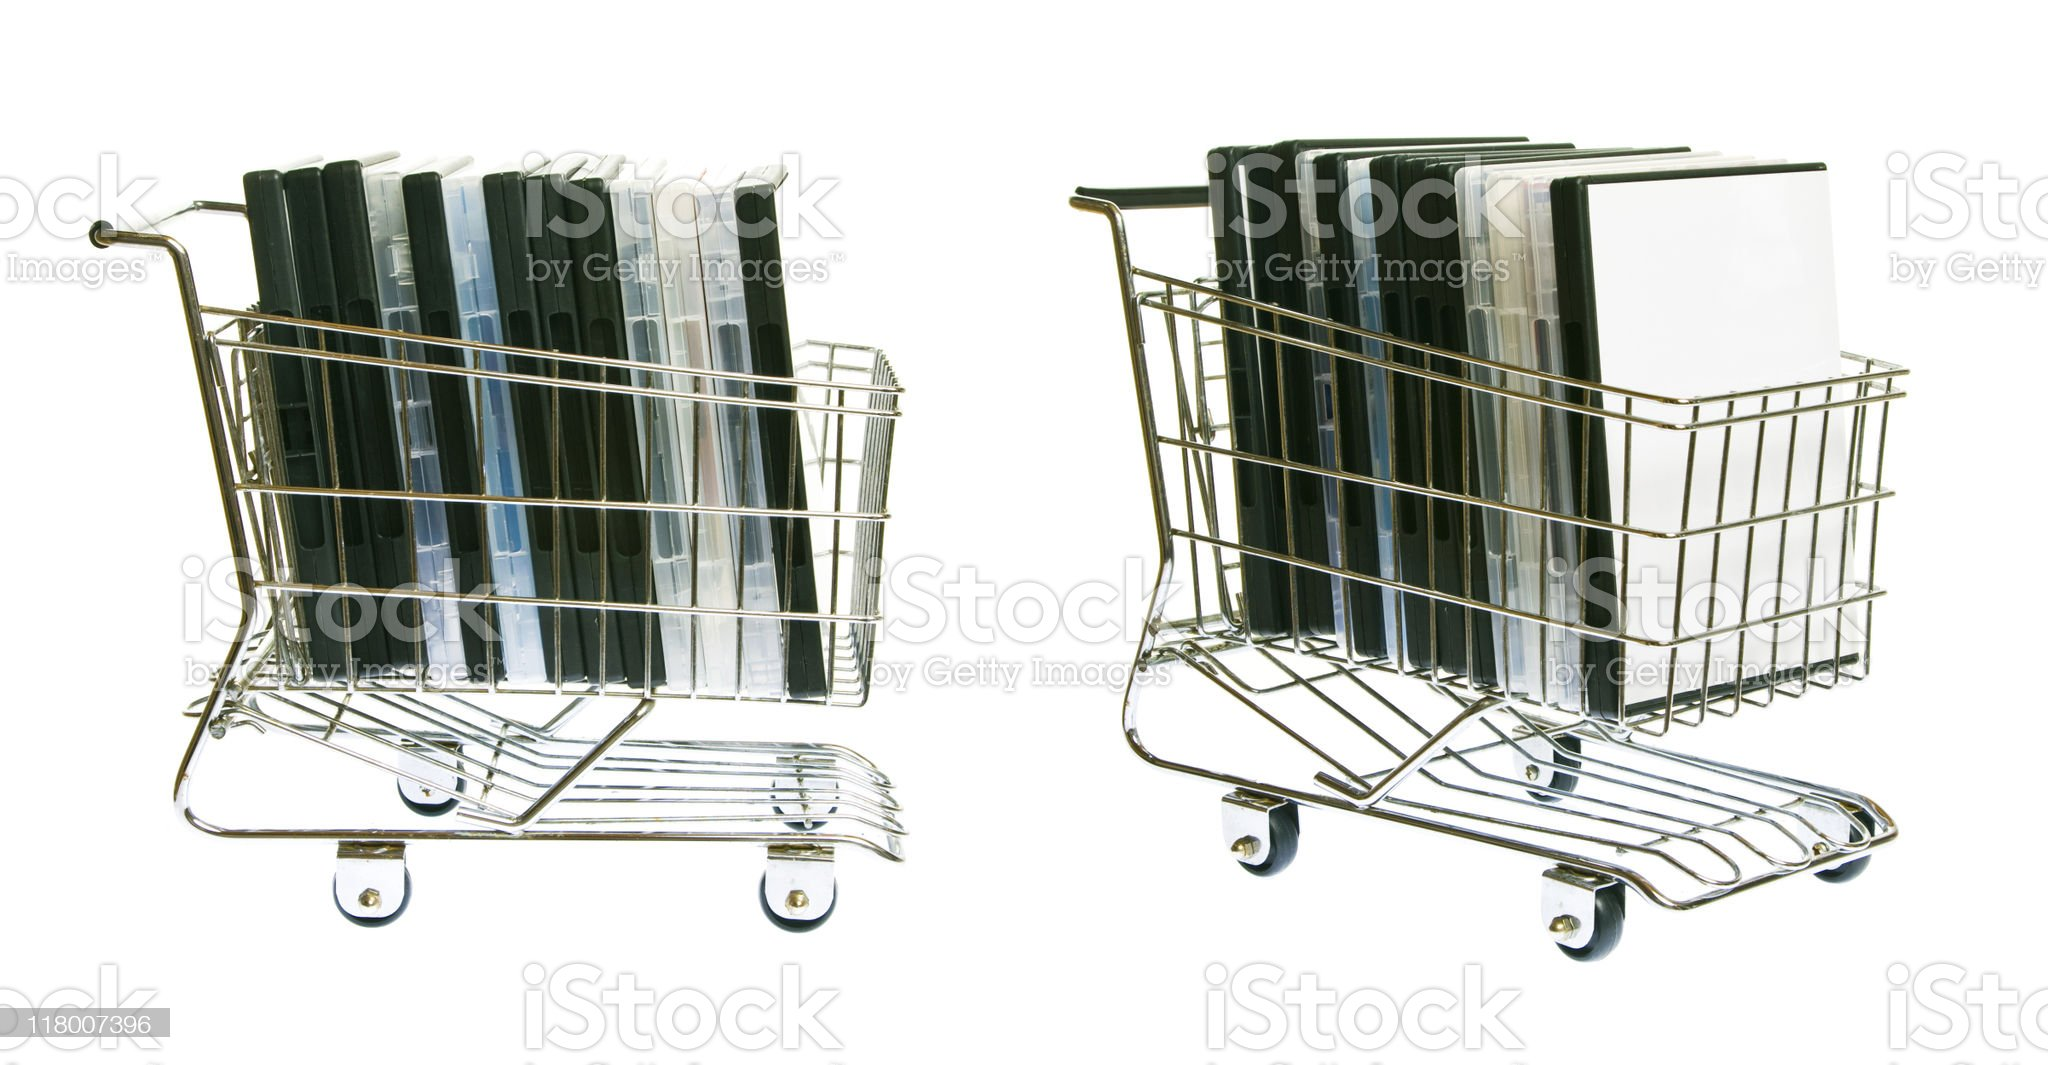 shopping cart with DVDs royalty-free stock photo